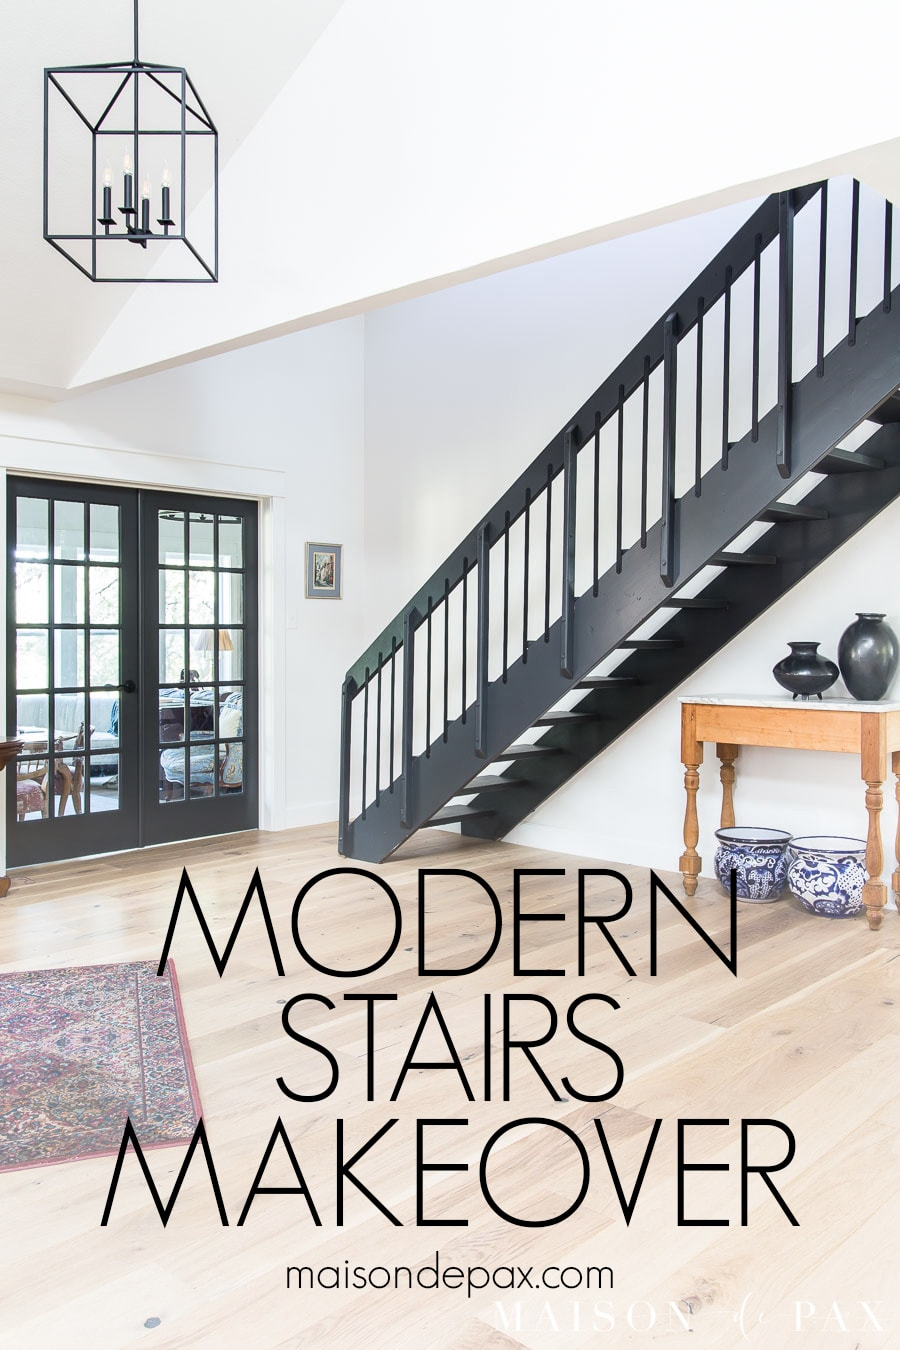 modern stairs makeover with black iron railing and balusters